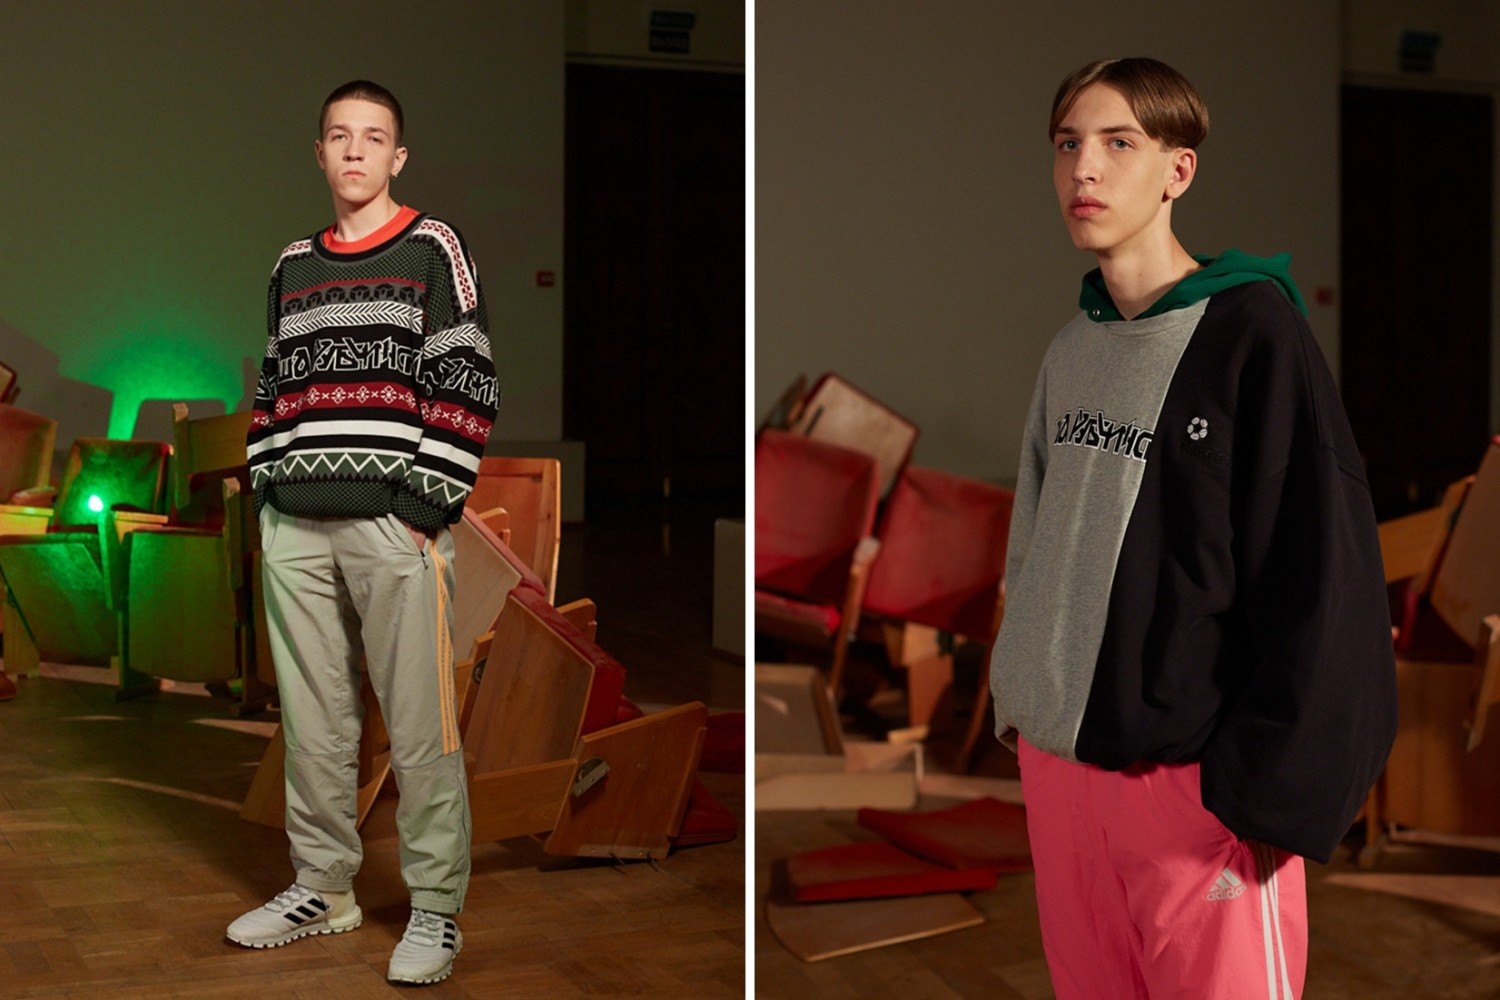 gosha-rubchinskiy-spring-summer-2018-lookbook-9-1